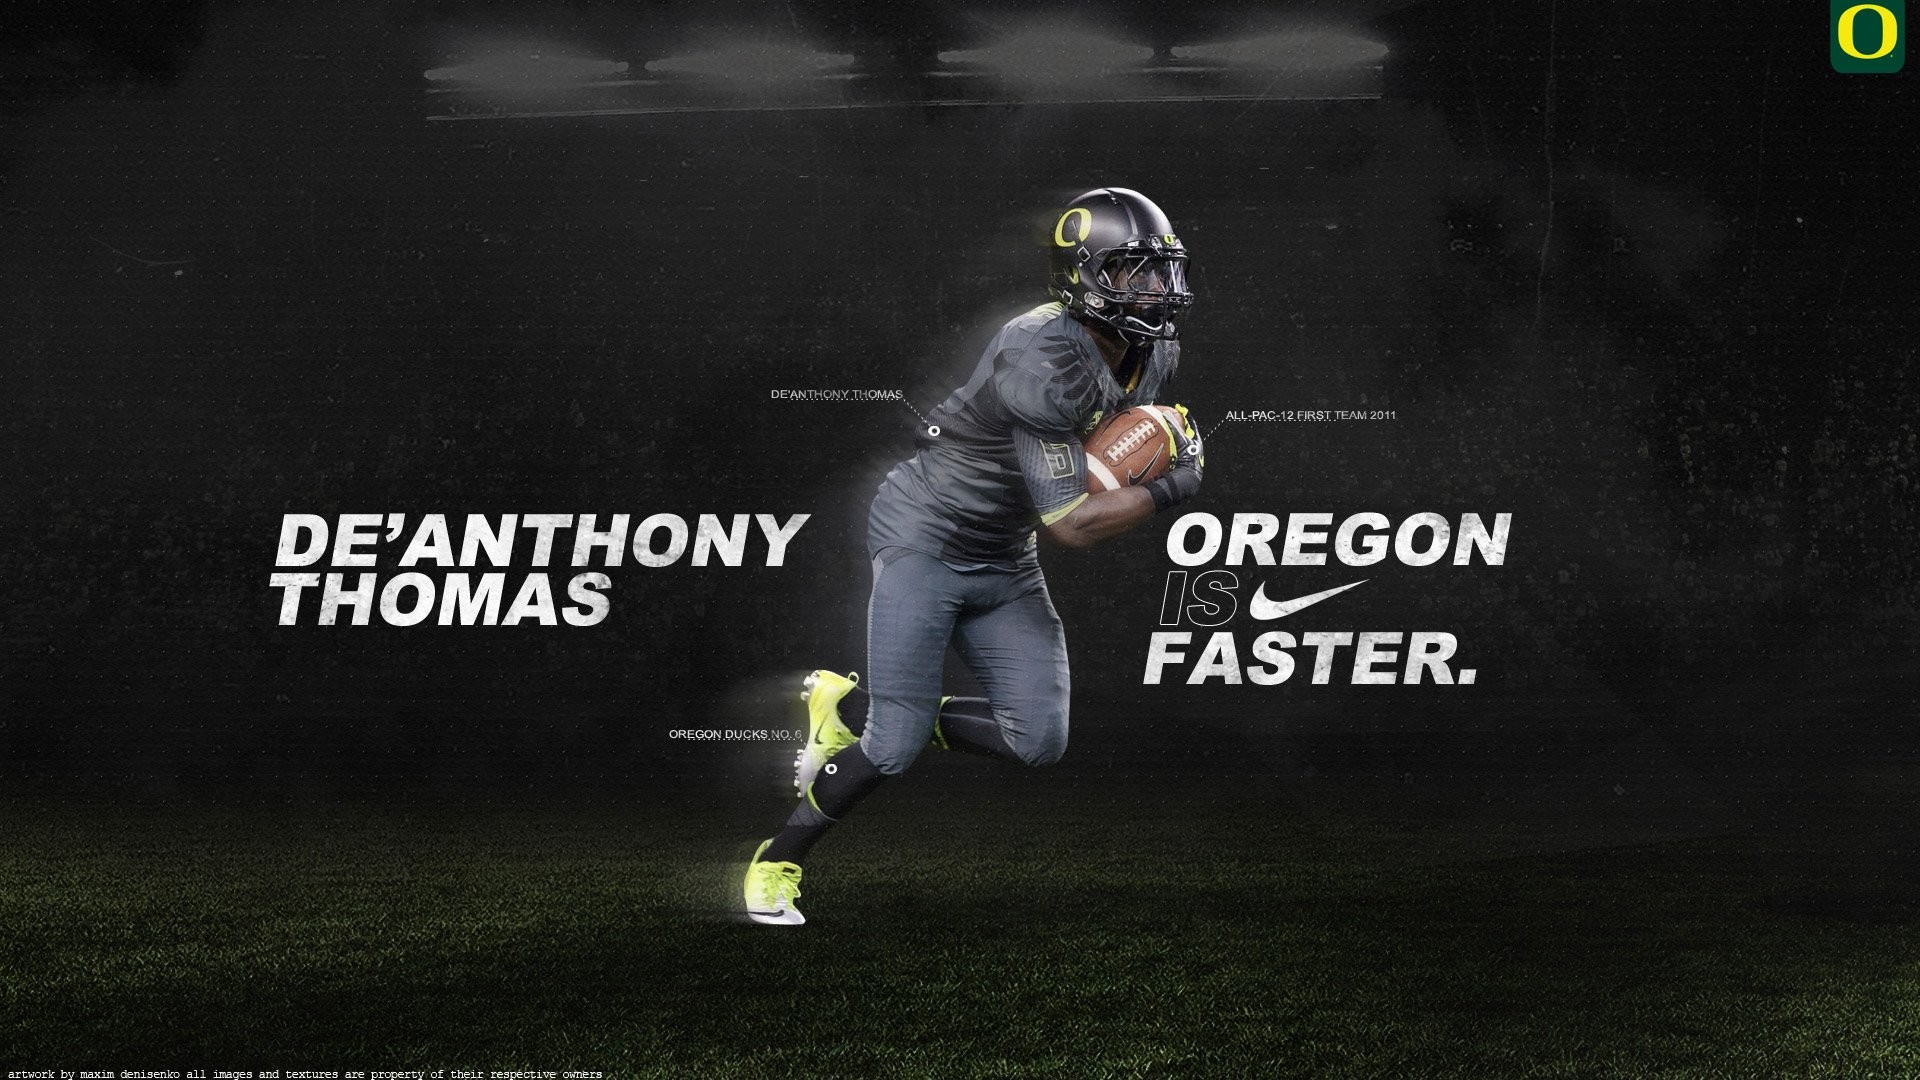 1920x1080 Oregon Football Poster 2013 wallpaper - 1111986